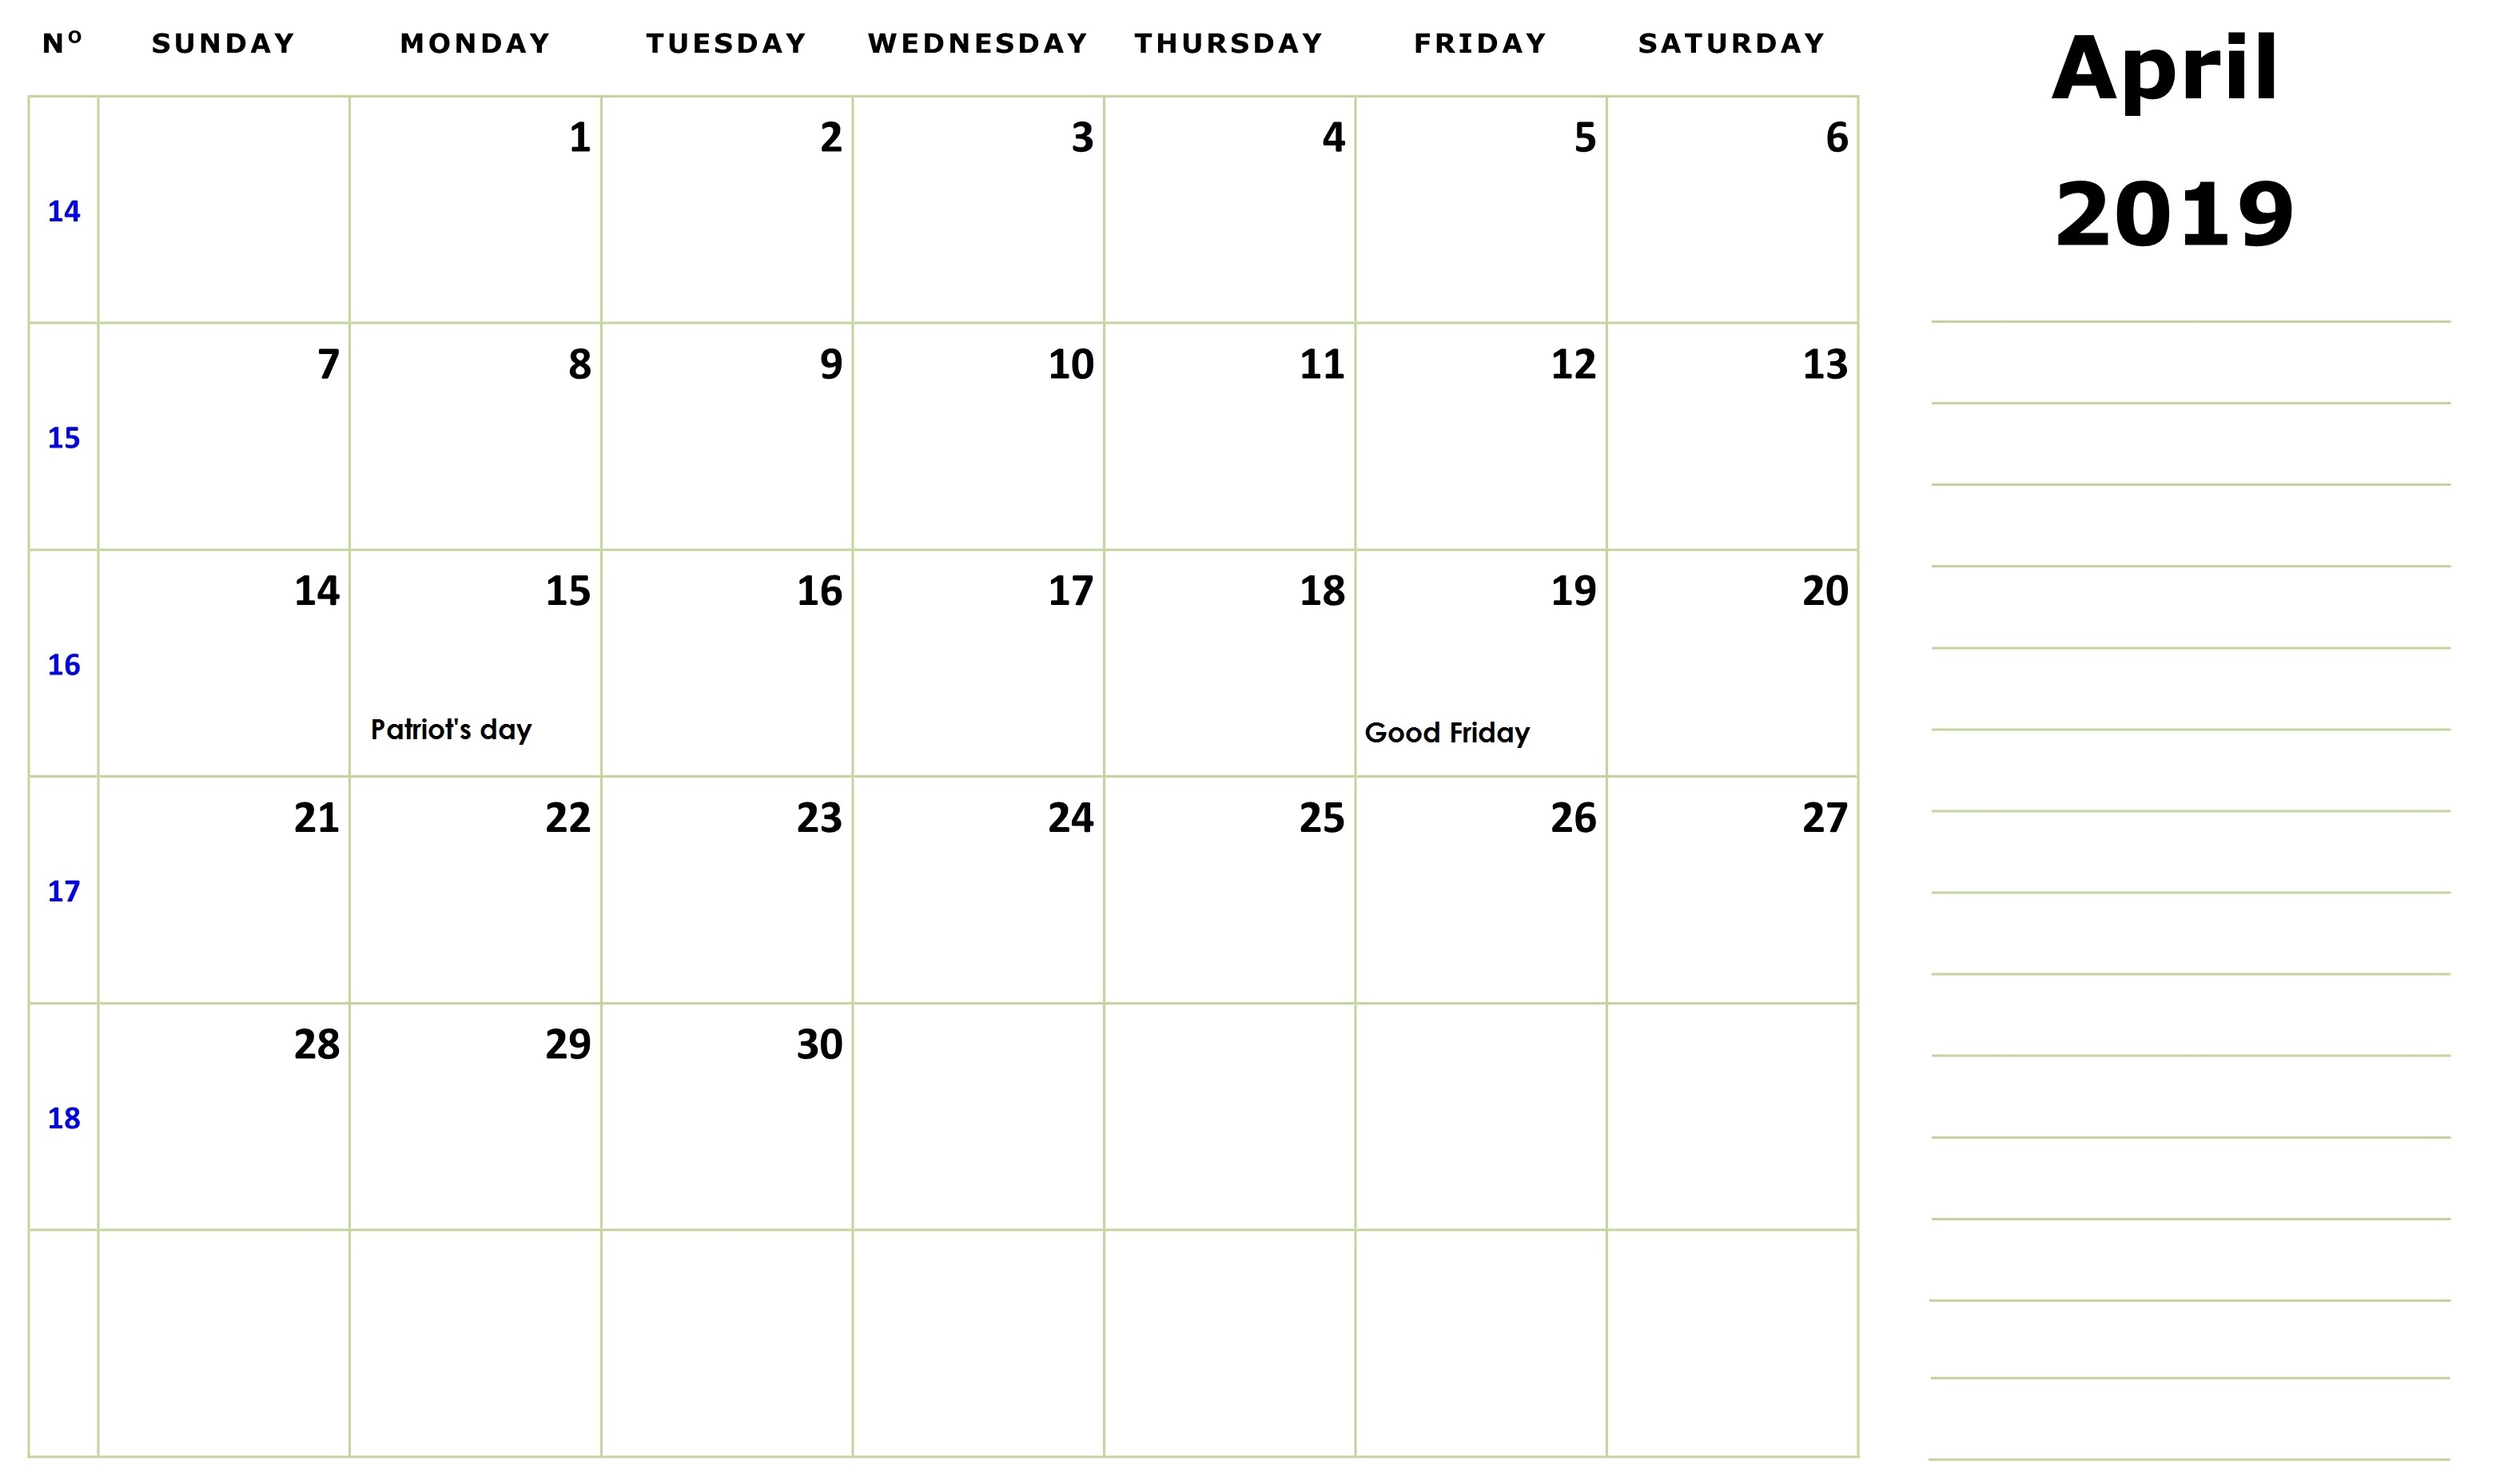 April 2019 Monthly Holidays Calendar